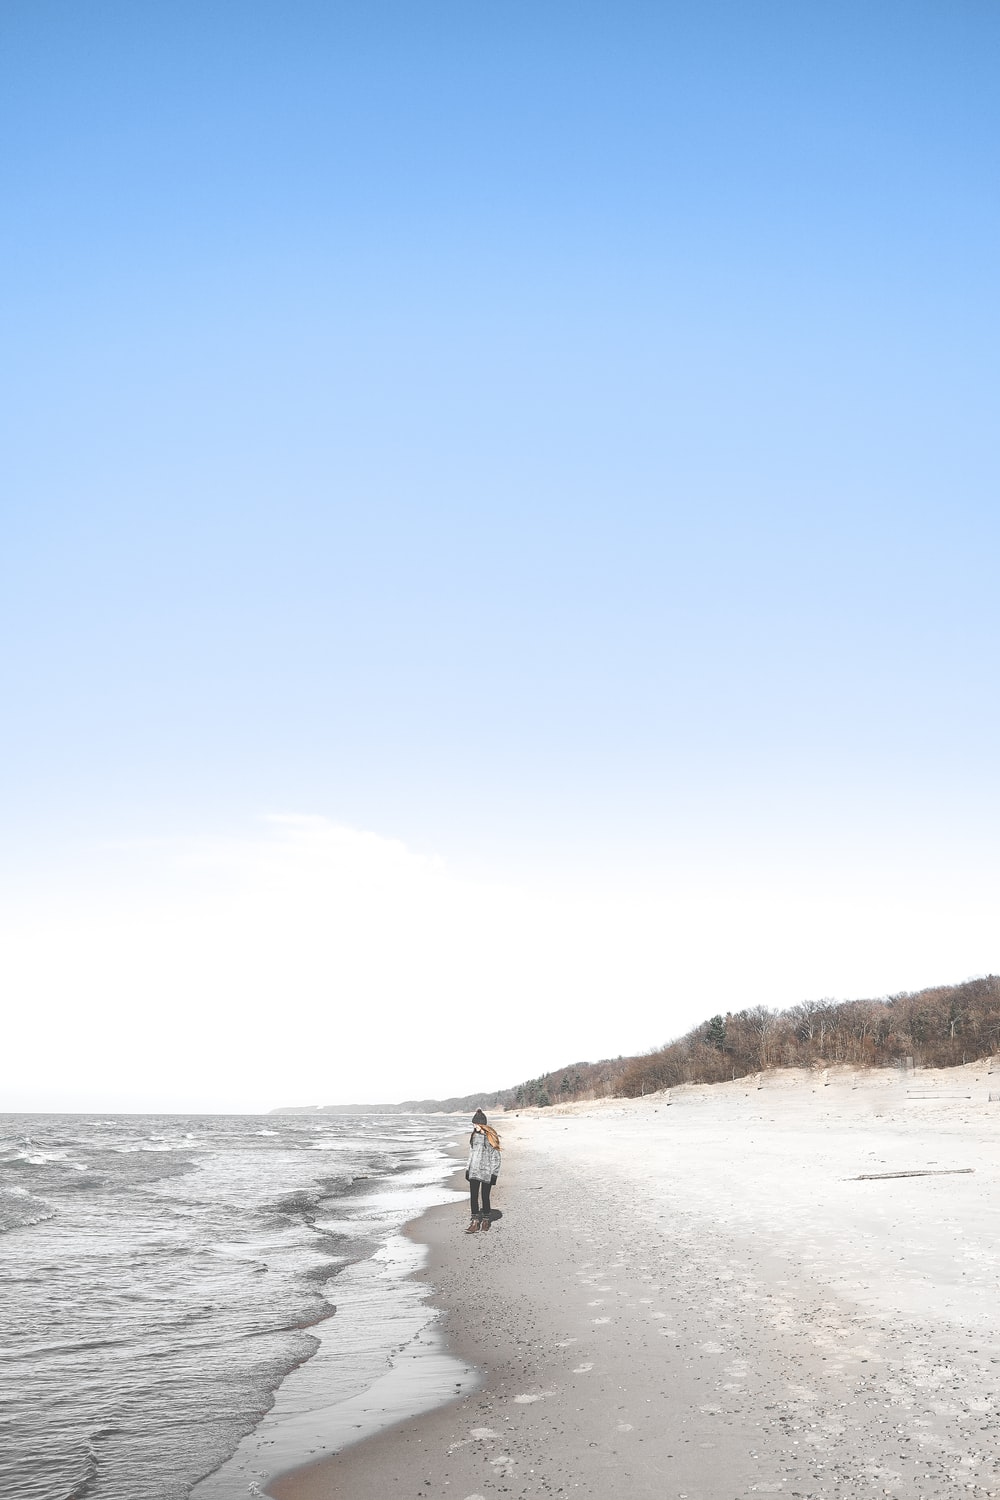 person standing on beach sand near sea water